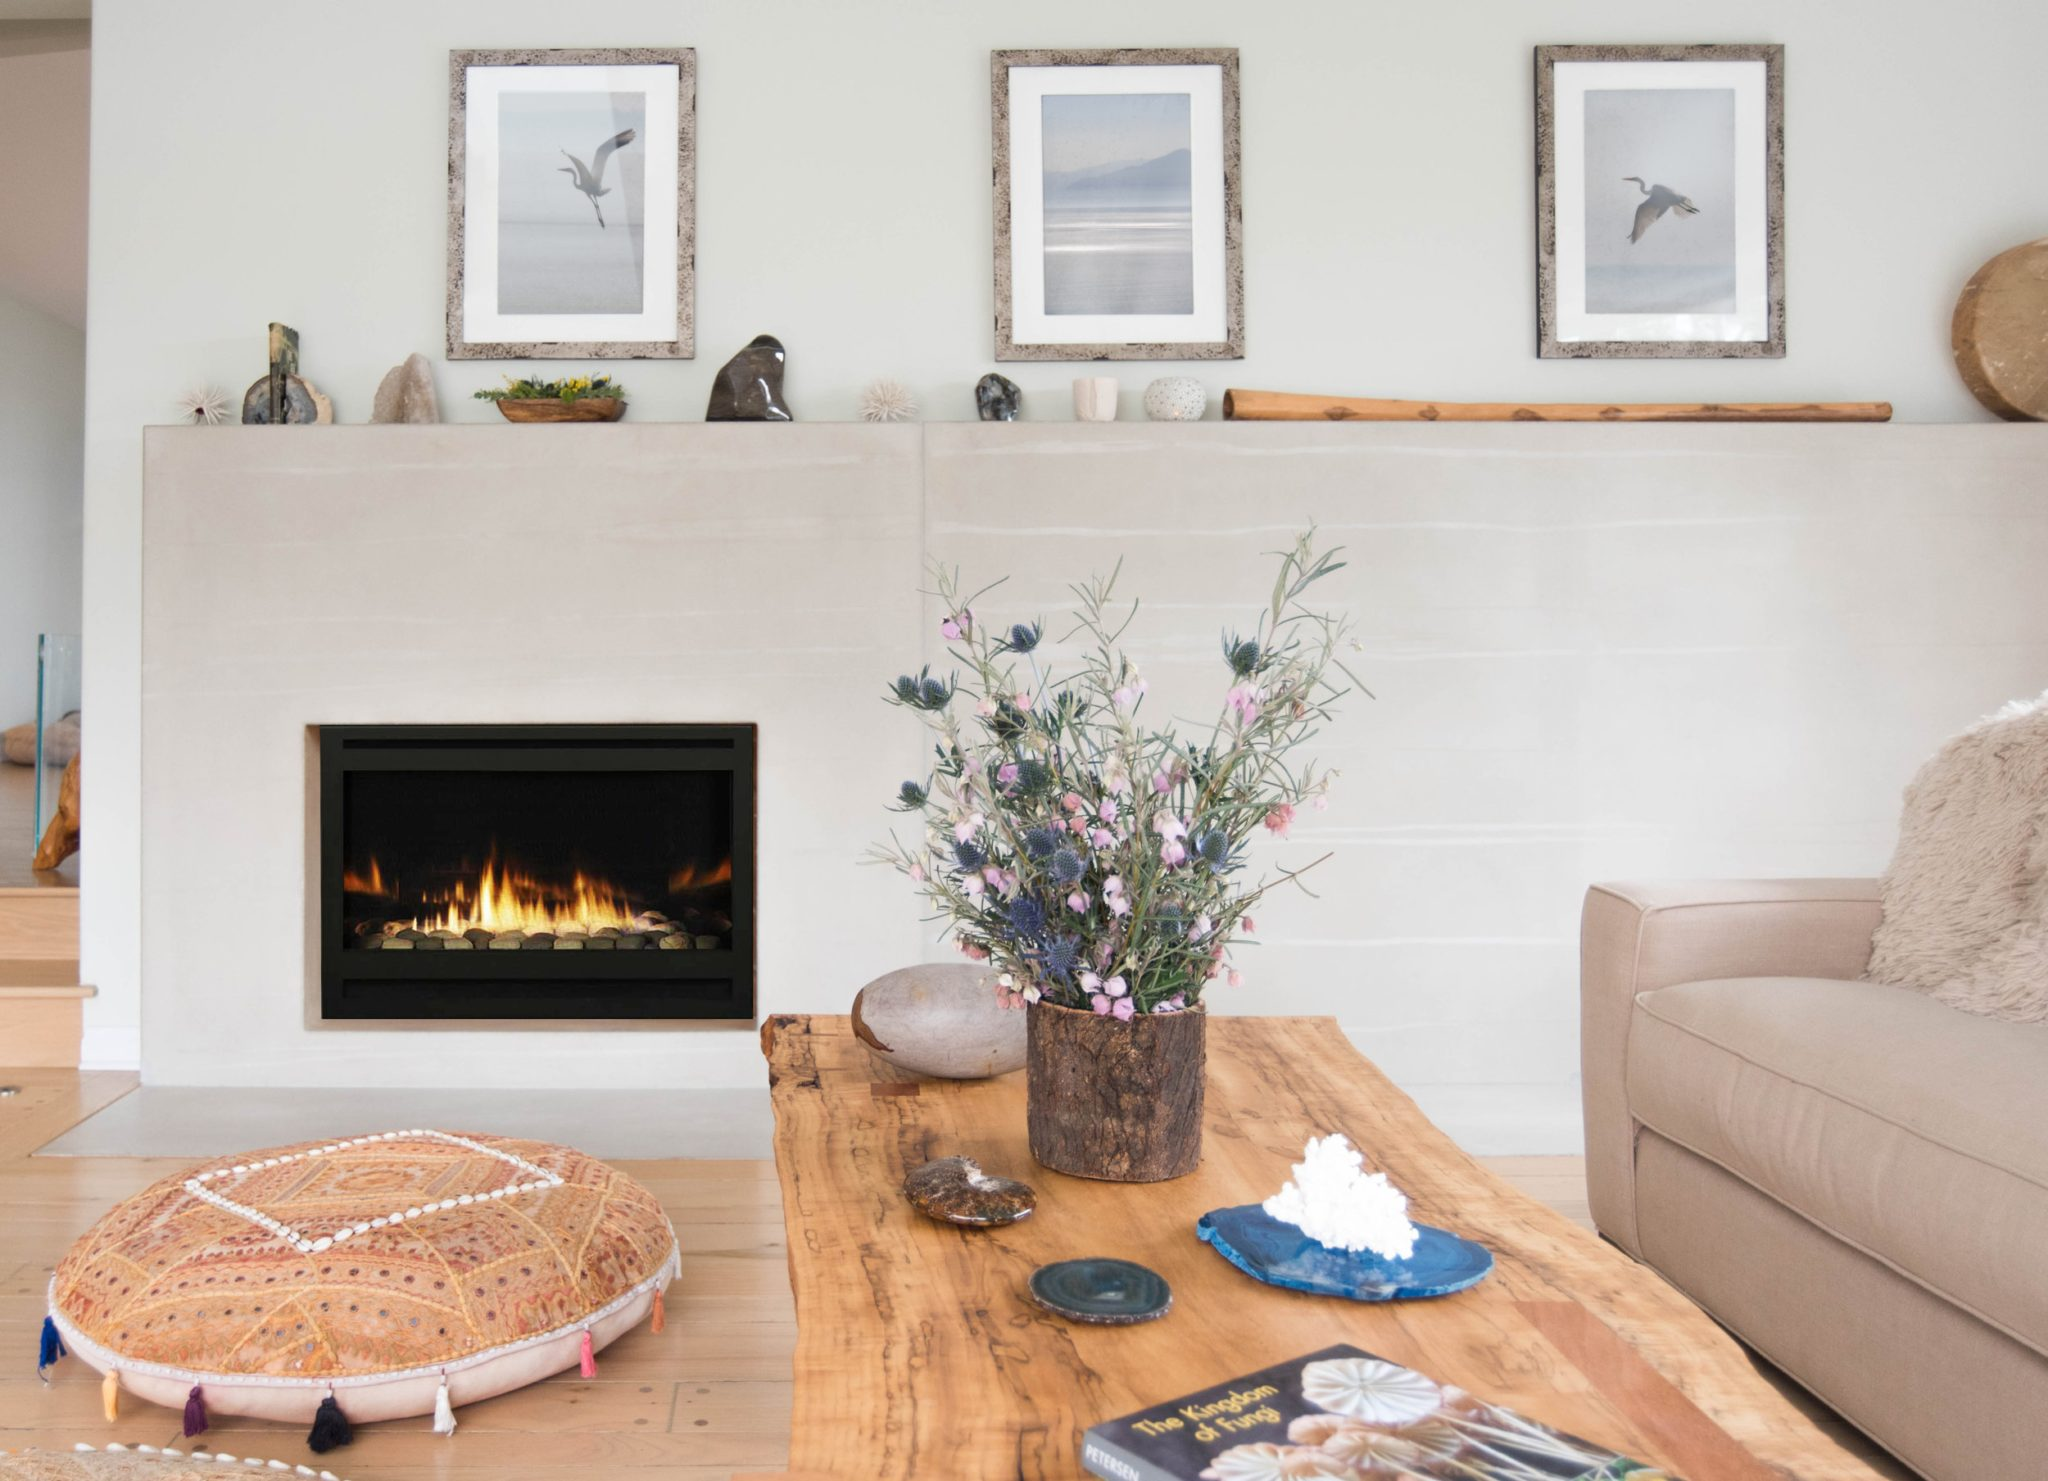 This custom fireplace designed by Sarah Barnard displays mineral specimens. by Sarah Barnard Design